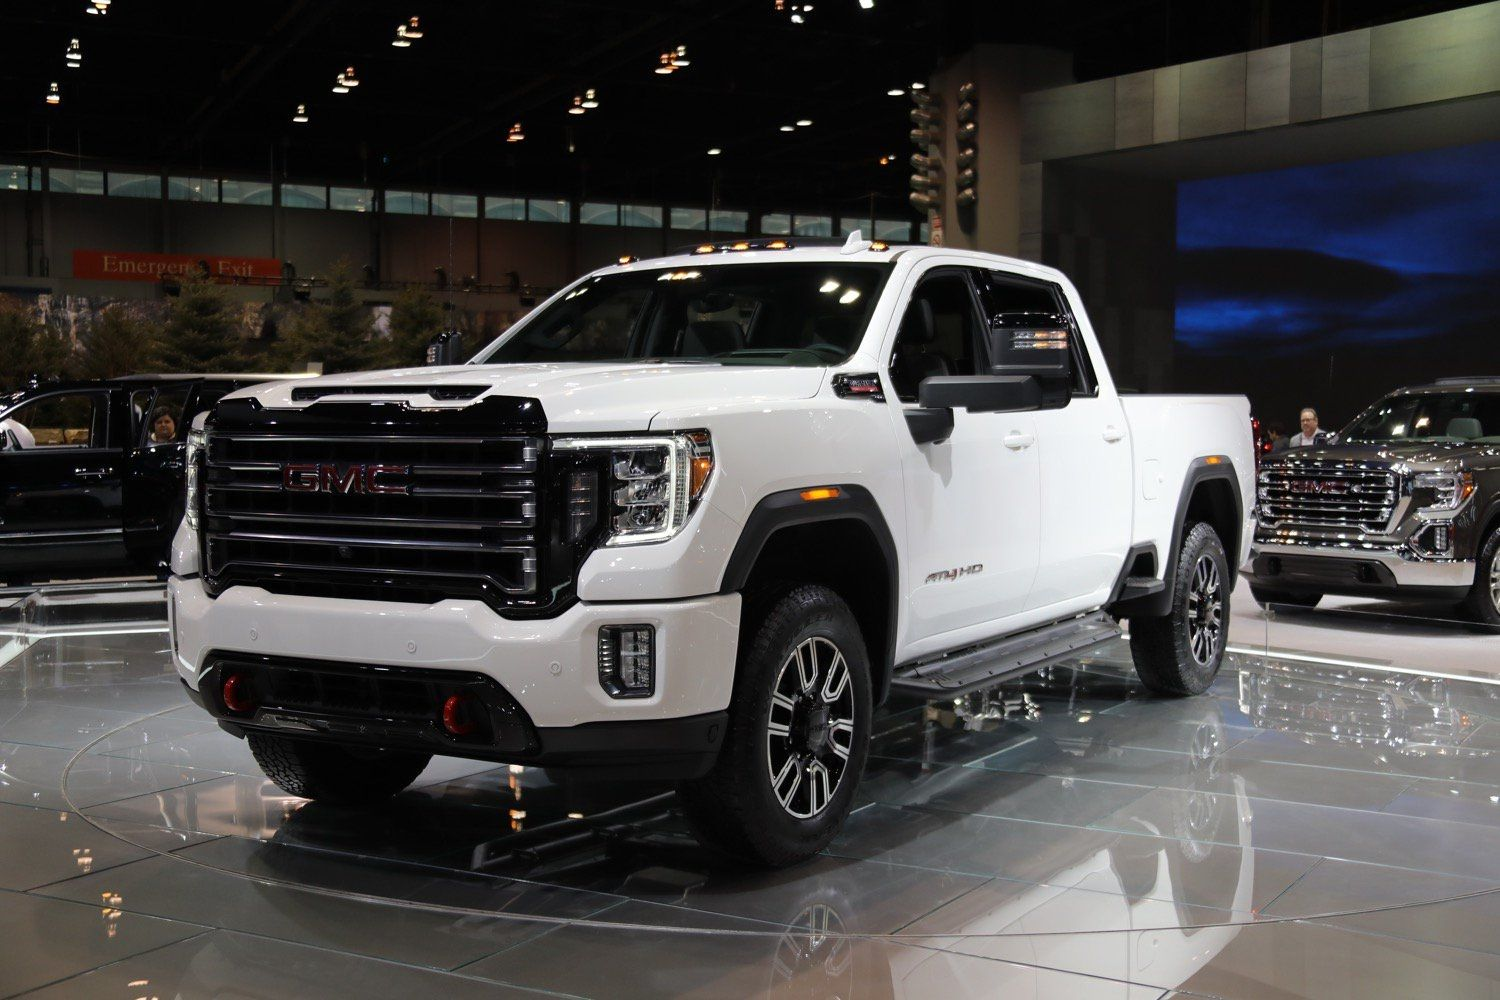 2020 Gmc Sierra Hd Features Engine Release Design Price Photos Dengan Gambar